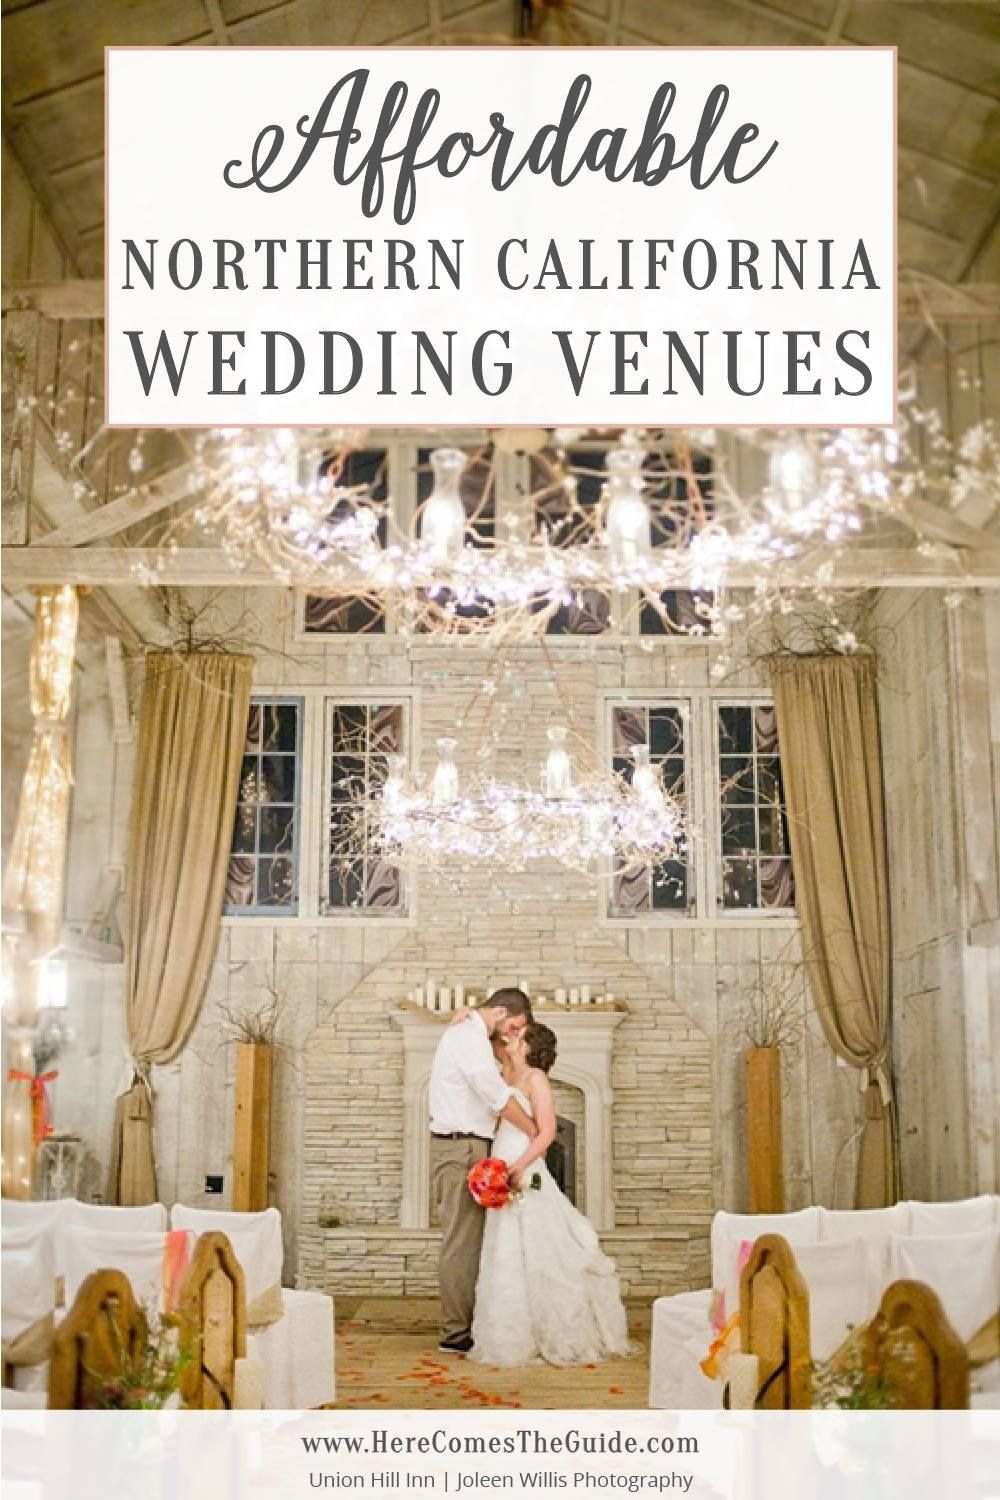 Find Your Affordable Norcal Wedding Venue On Here Comes The Guide